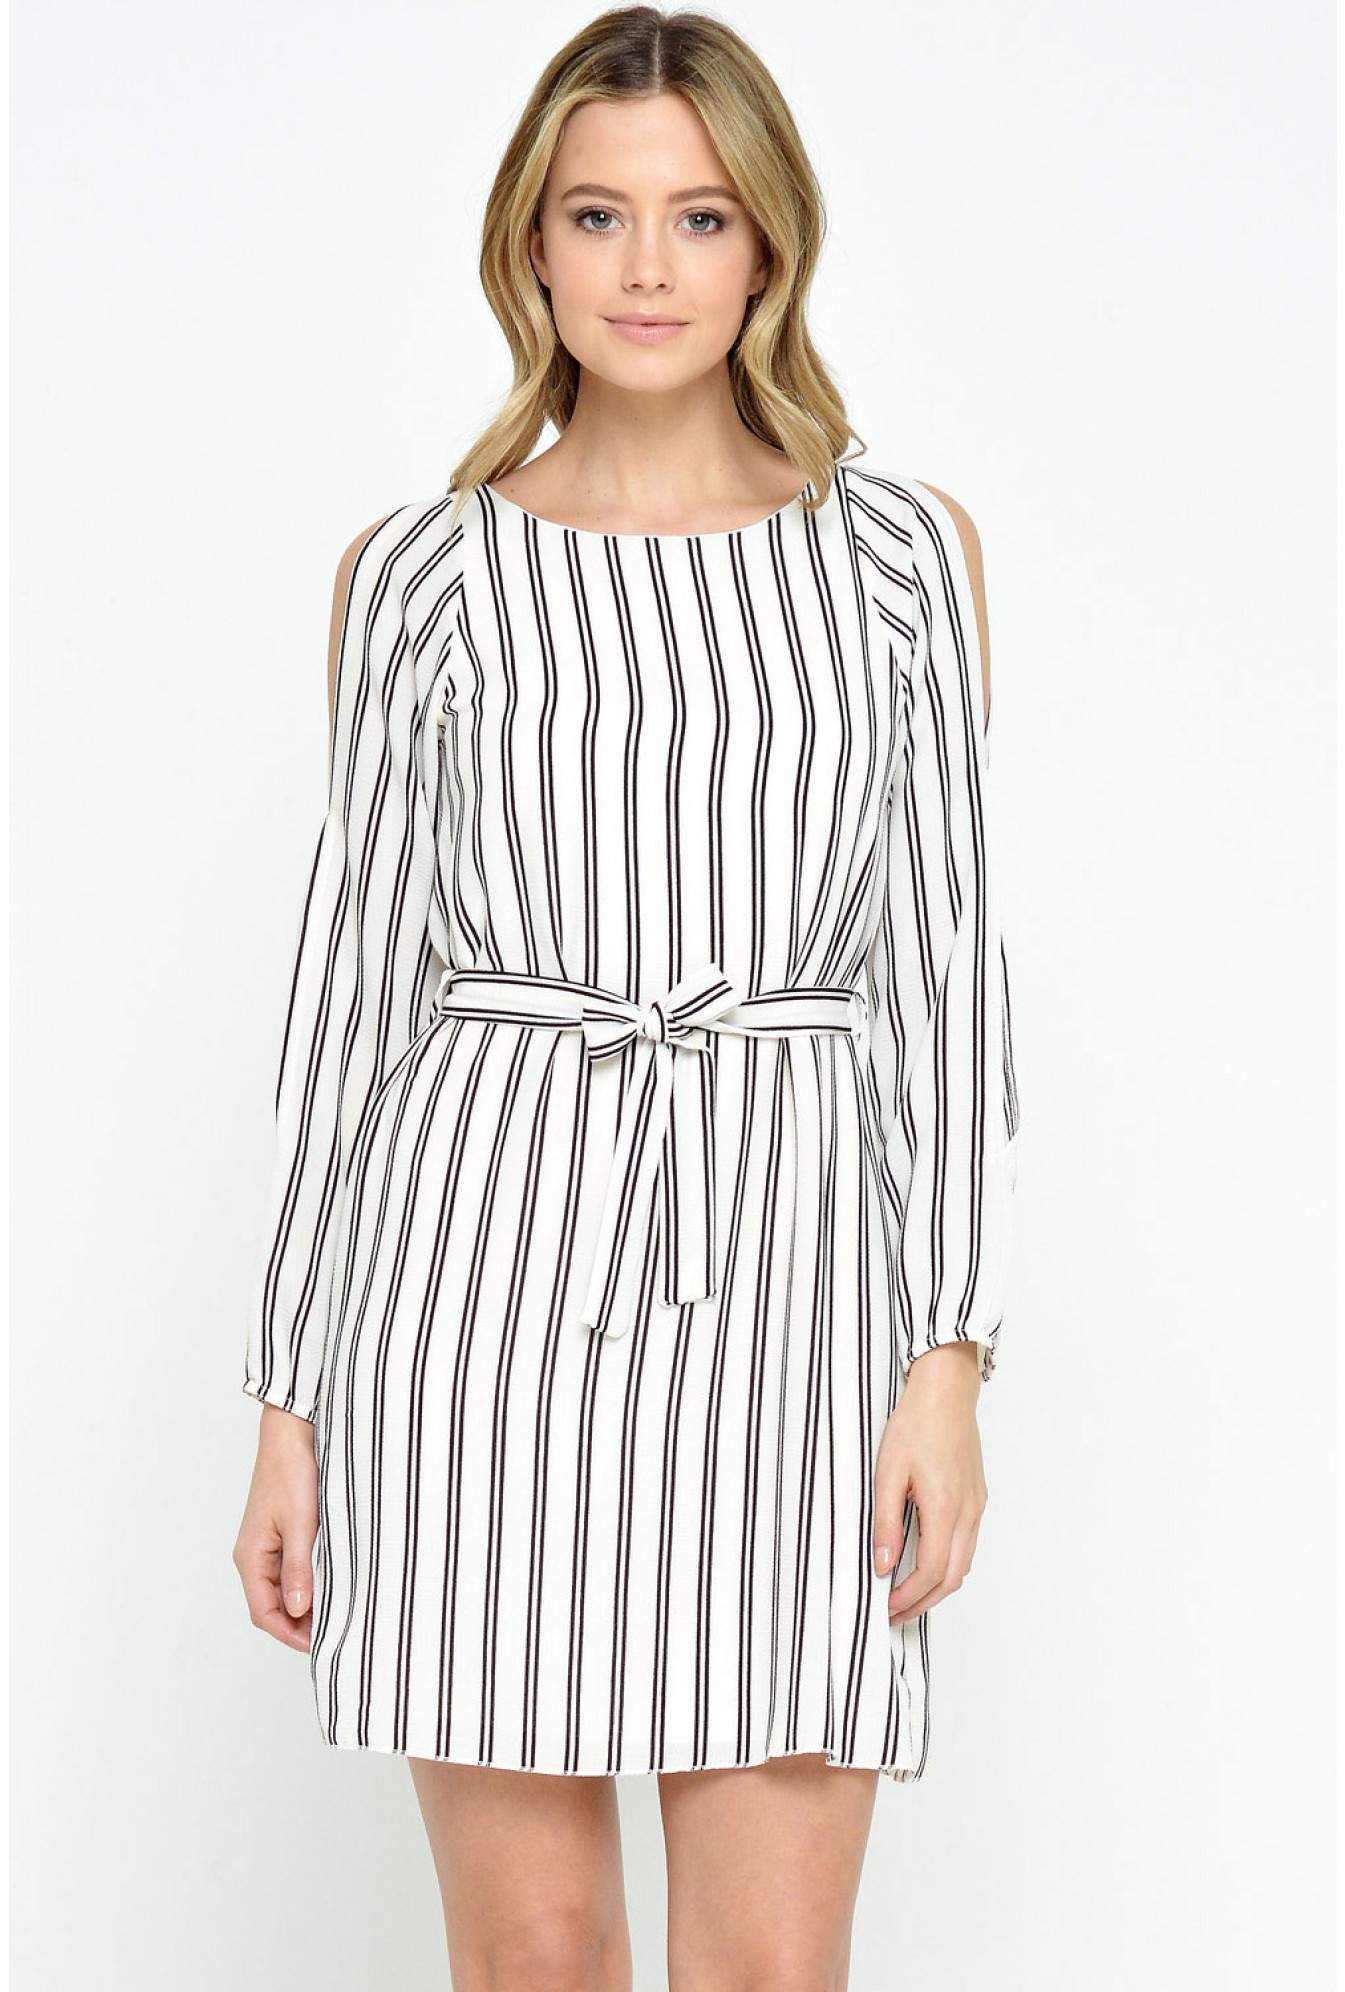 2982f2f9e9 Diva Rosalynn Striped Cold Shoulder Dress in Stripe | iCLOTHING